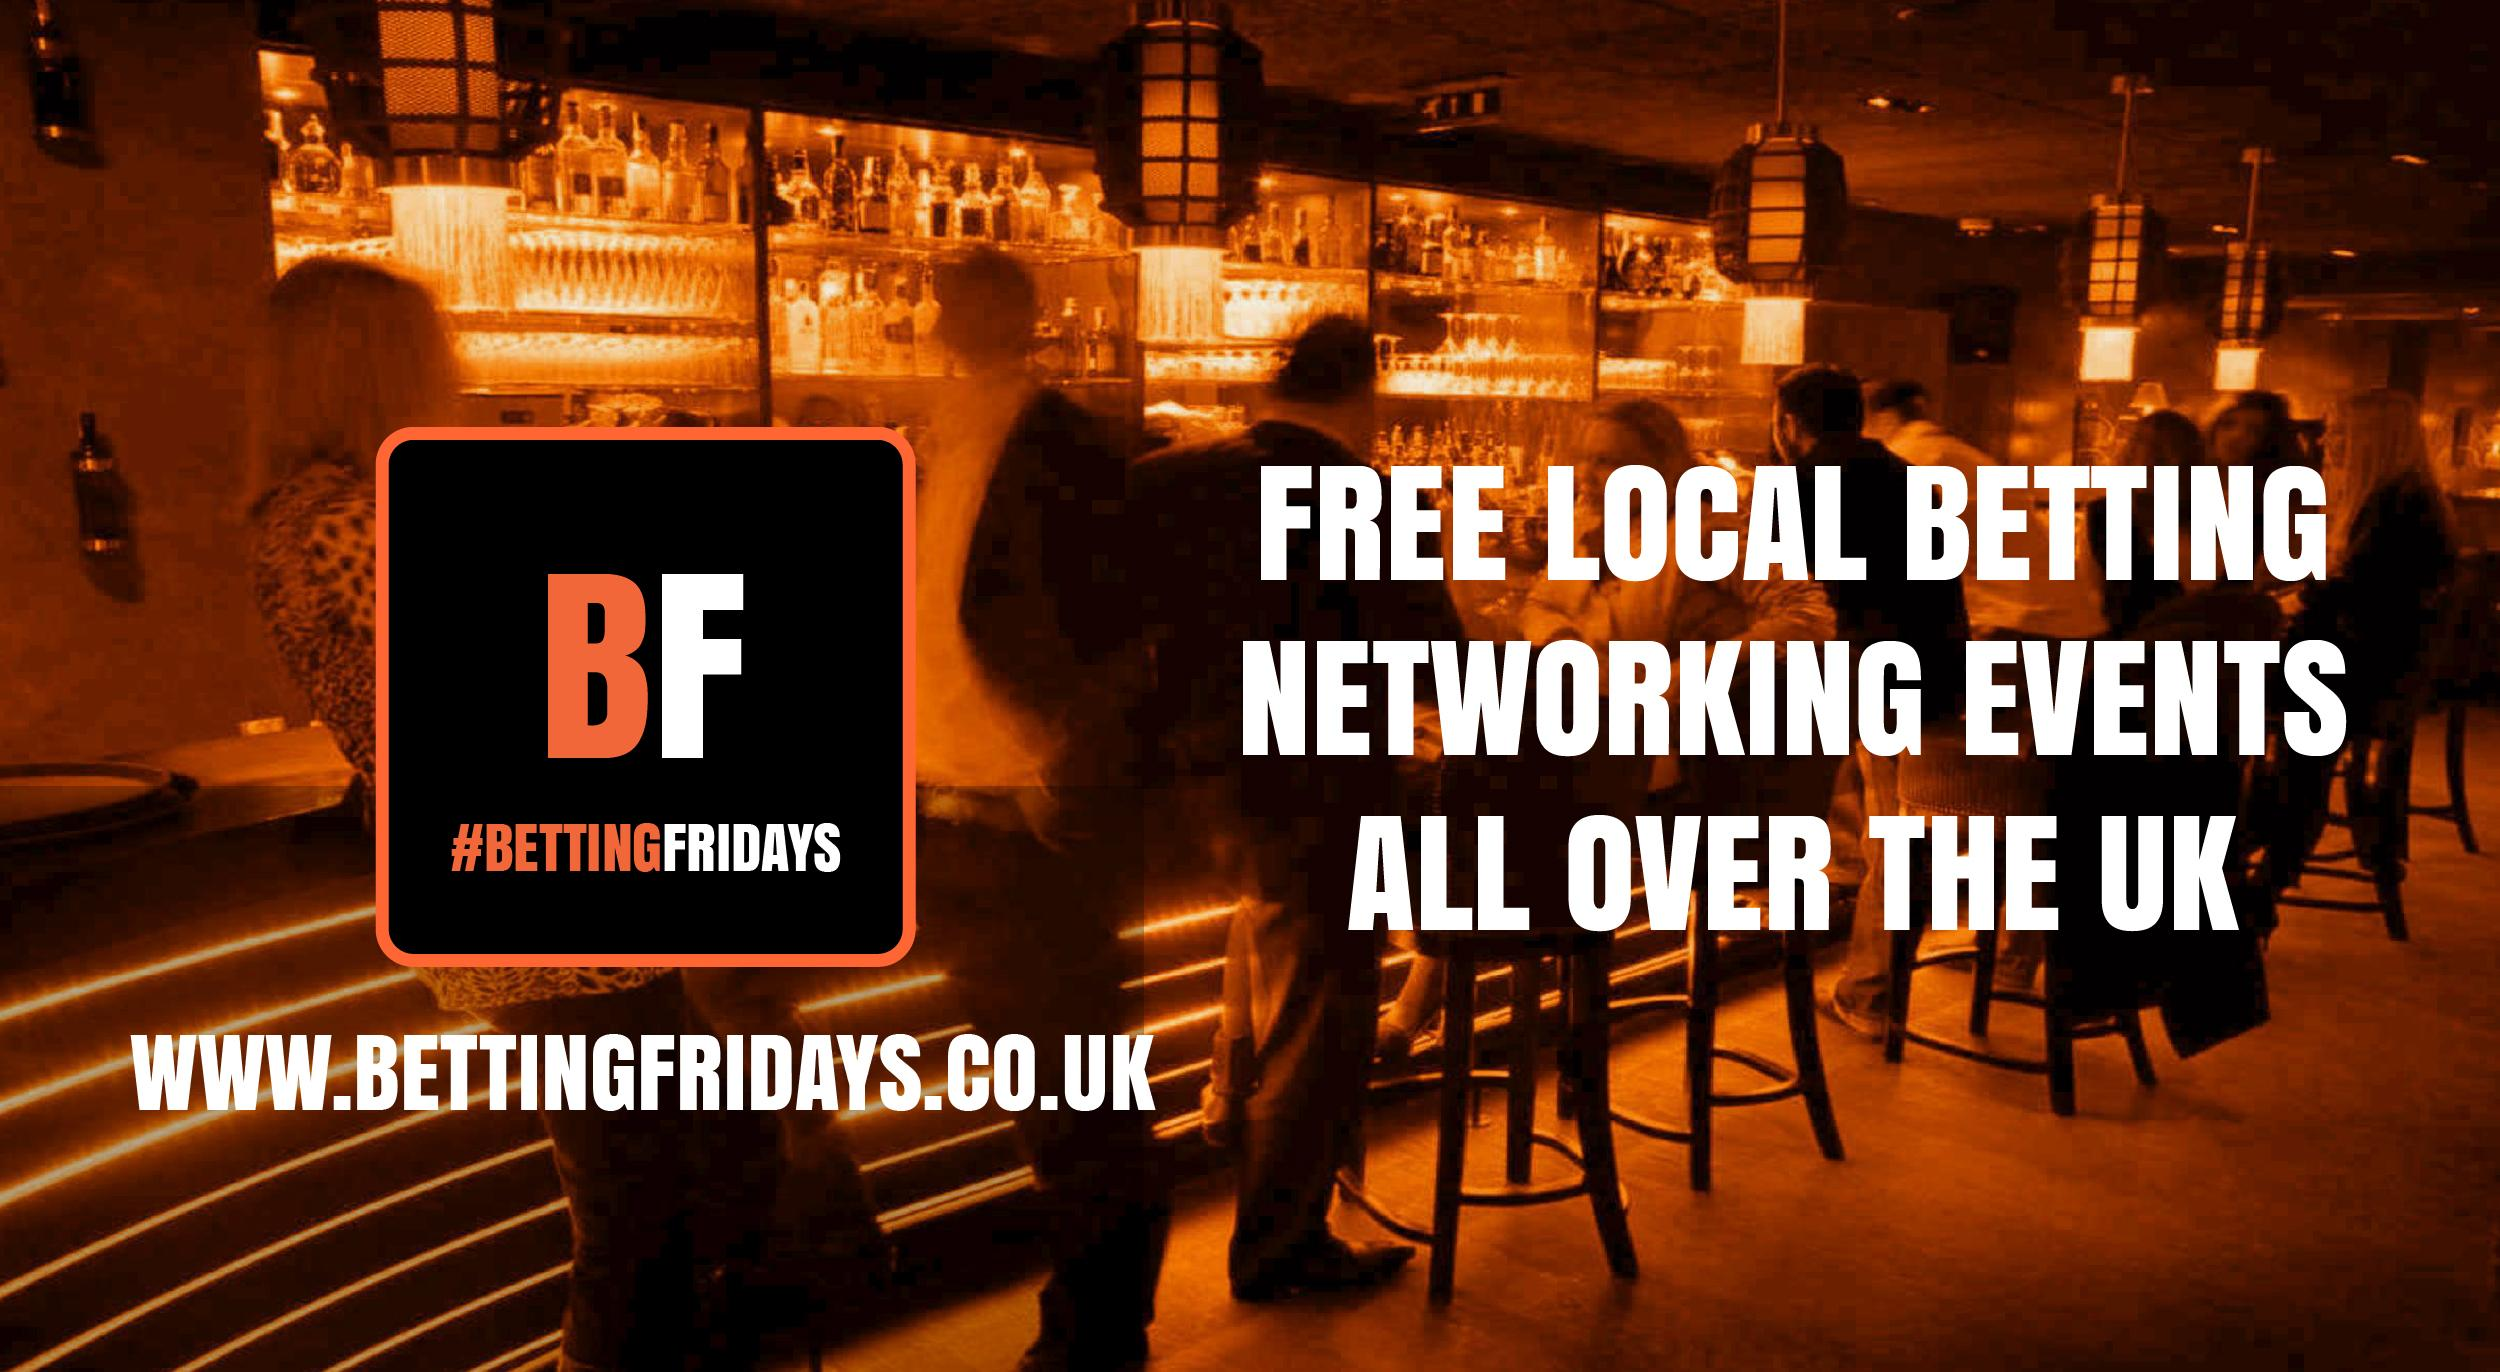 Betting Fridays! Free betting networking event in Moseley